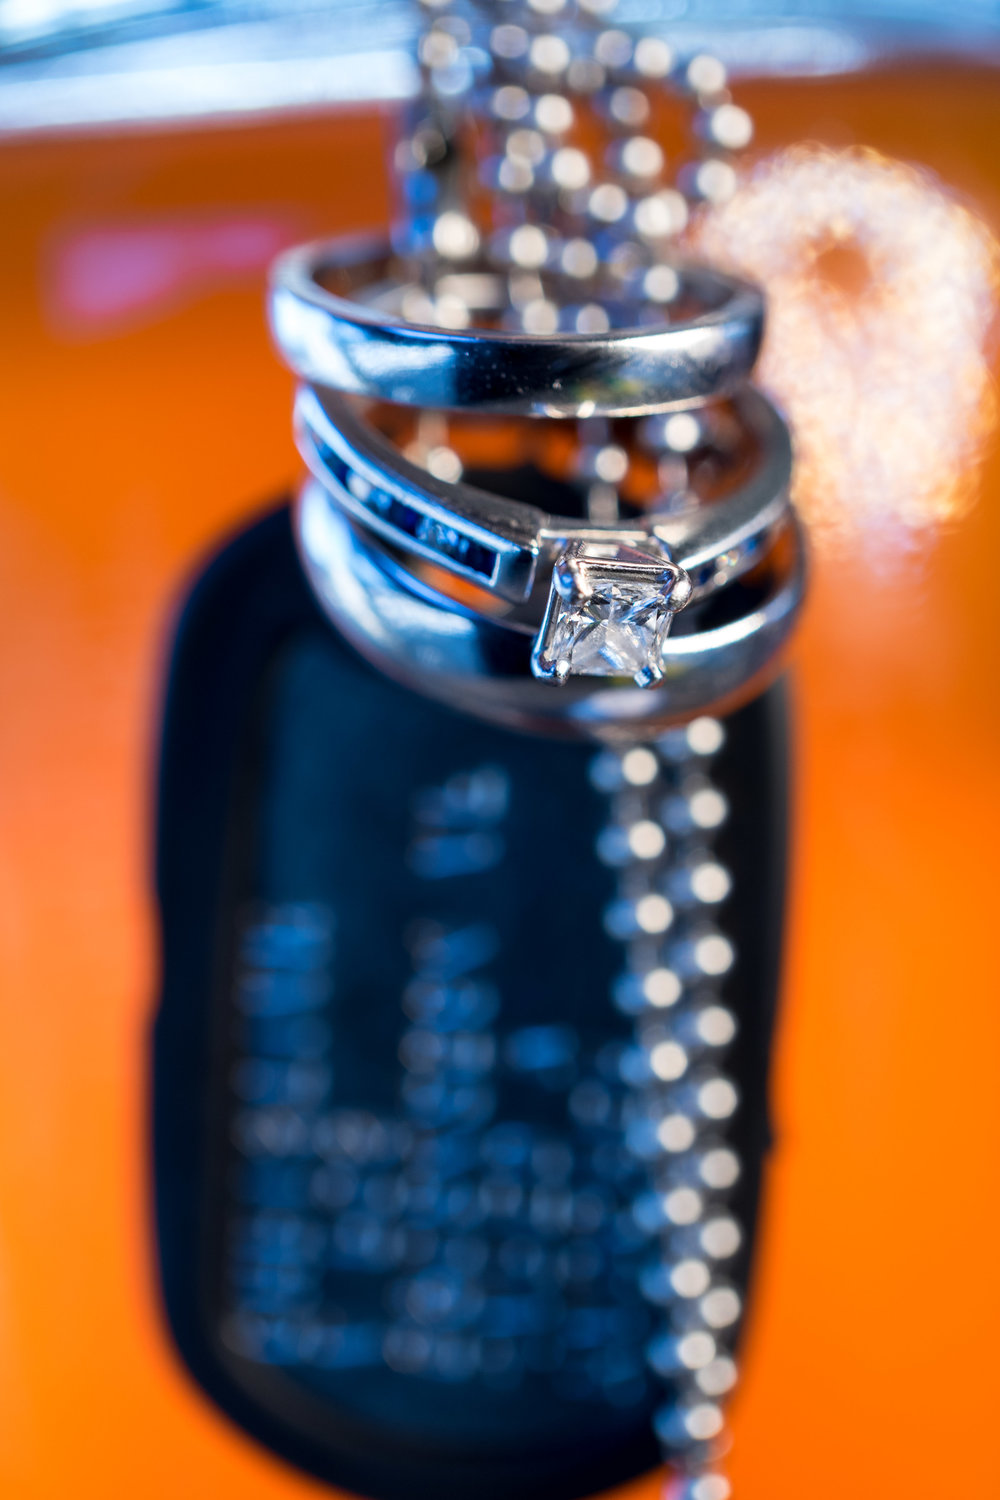 image of wedding rings dog tags and moonshine details pensacola florida wedding